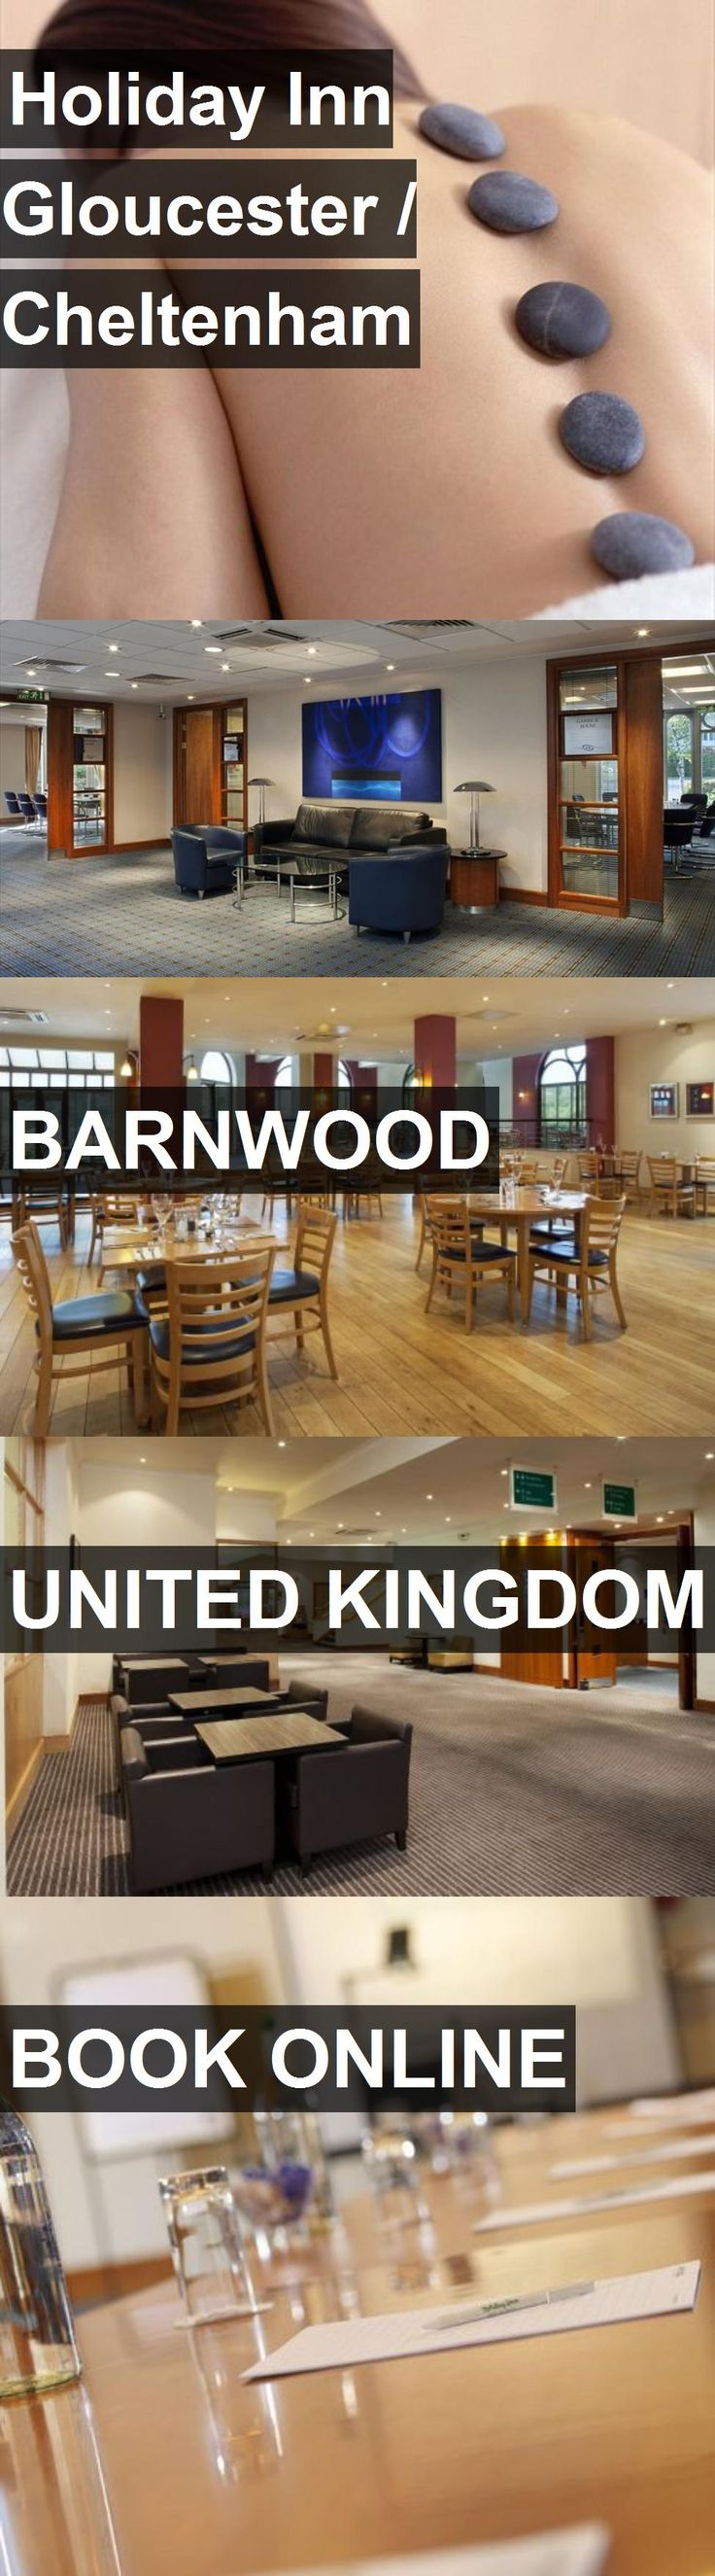 Hotel Holiday Inn Gloucester / Cheltenham in Barnwood, United Kingdom. For more information, photos, reviews and best prices please follow the link. #UnitedKingdom #Barnwood #travel #vacation #hotel